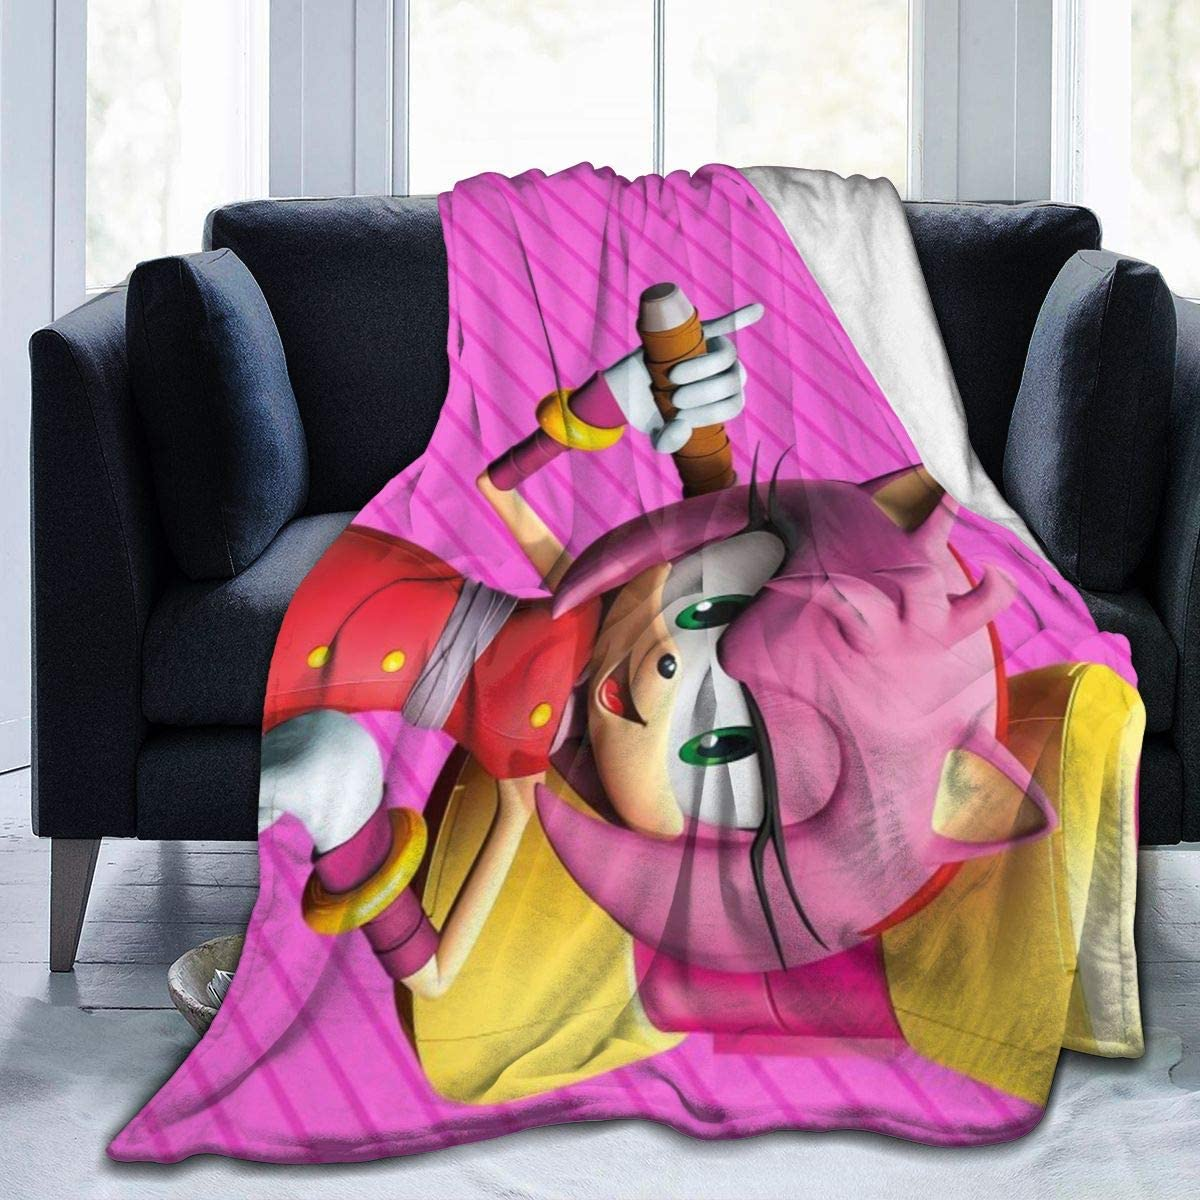 Amazon Com Sonic Boom Amy Rose Anime Warm Soft Novelty Ultra Soft Micro Fleece Throw Blanket For Living Room Bedroom 50 X40 Home Kitchen